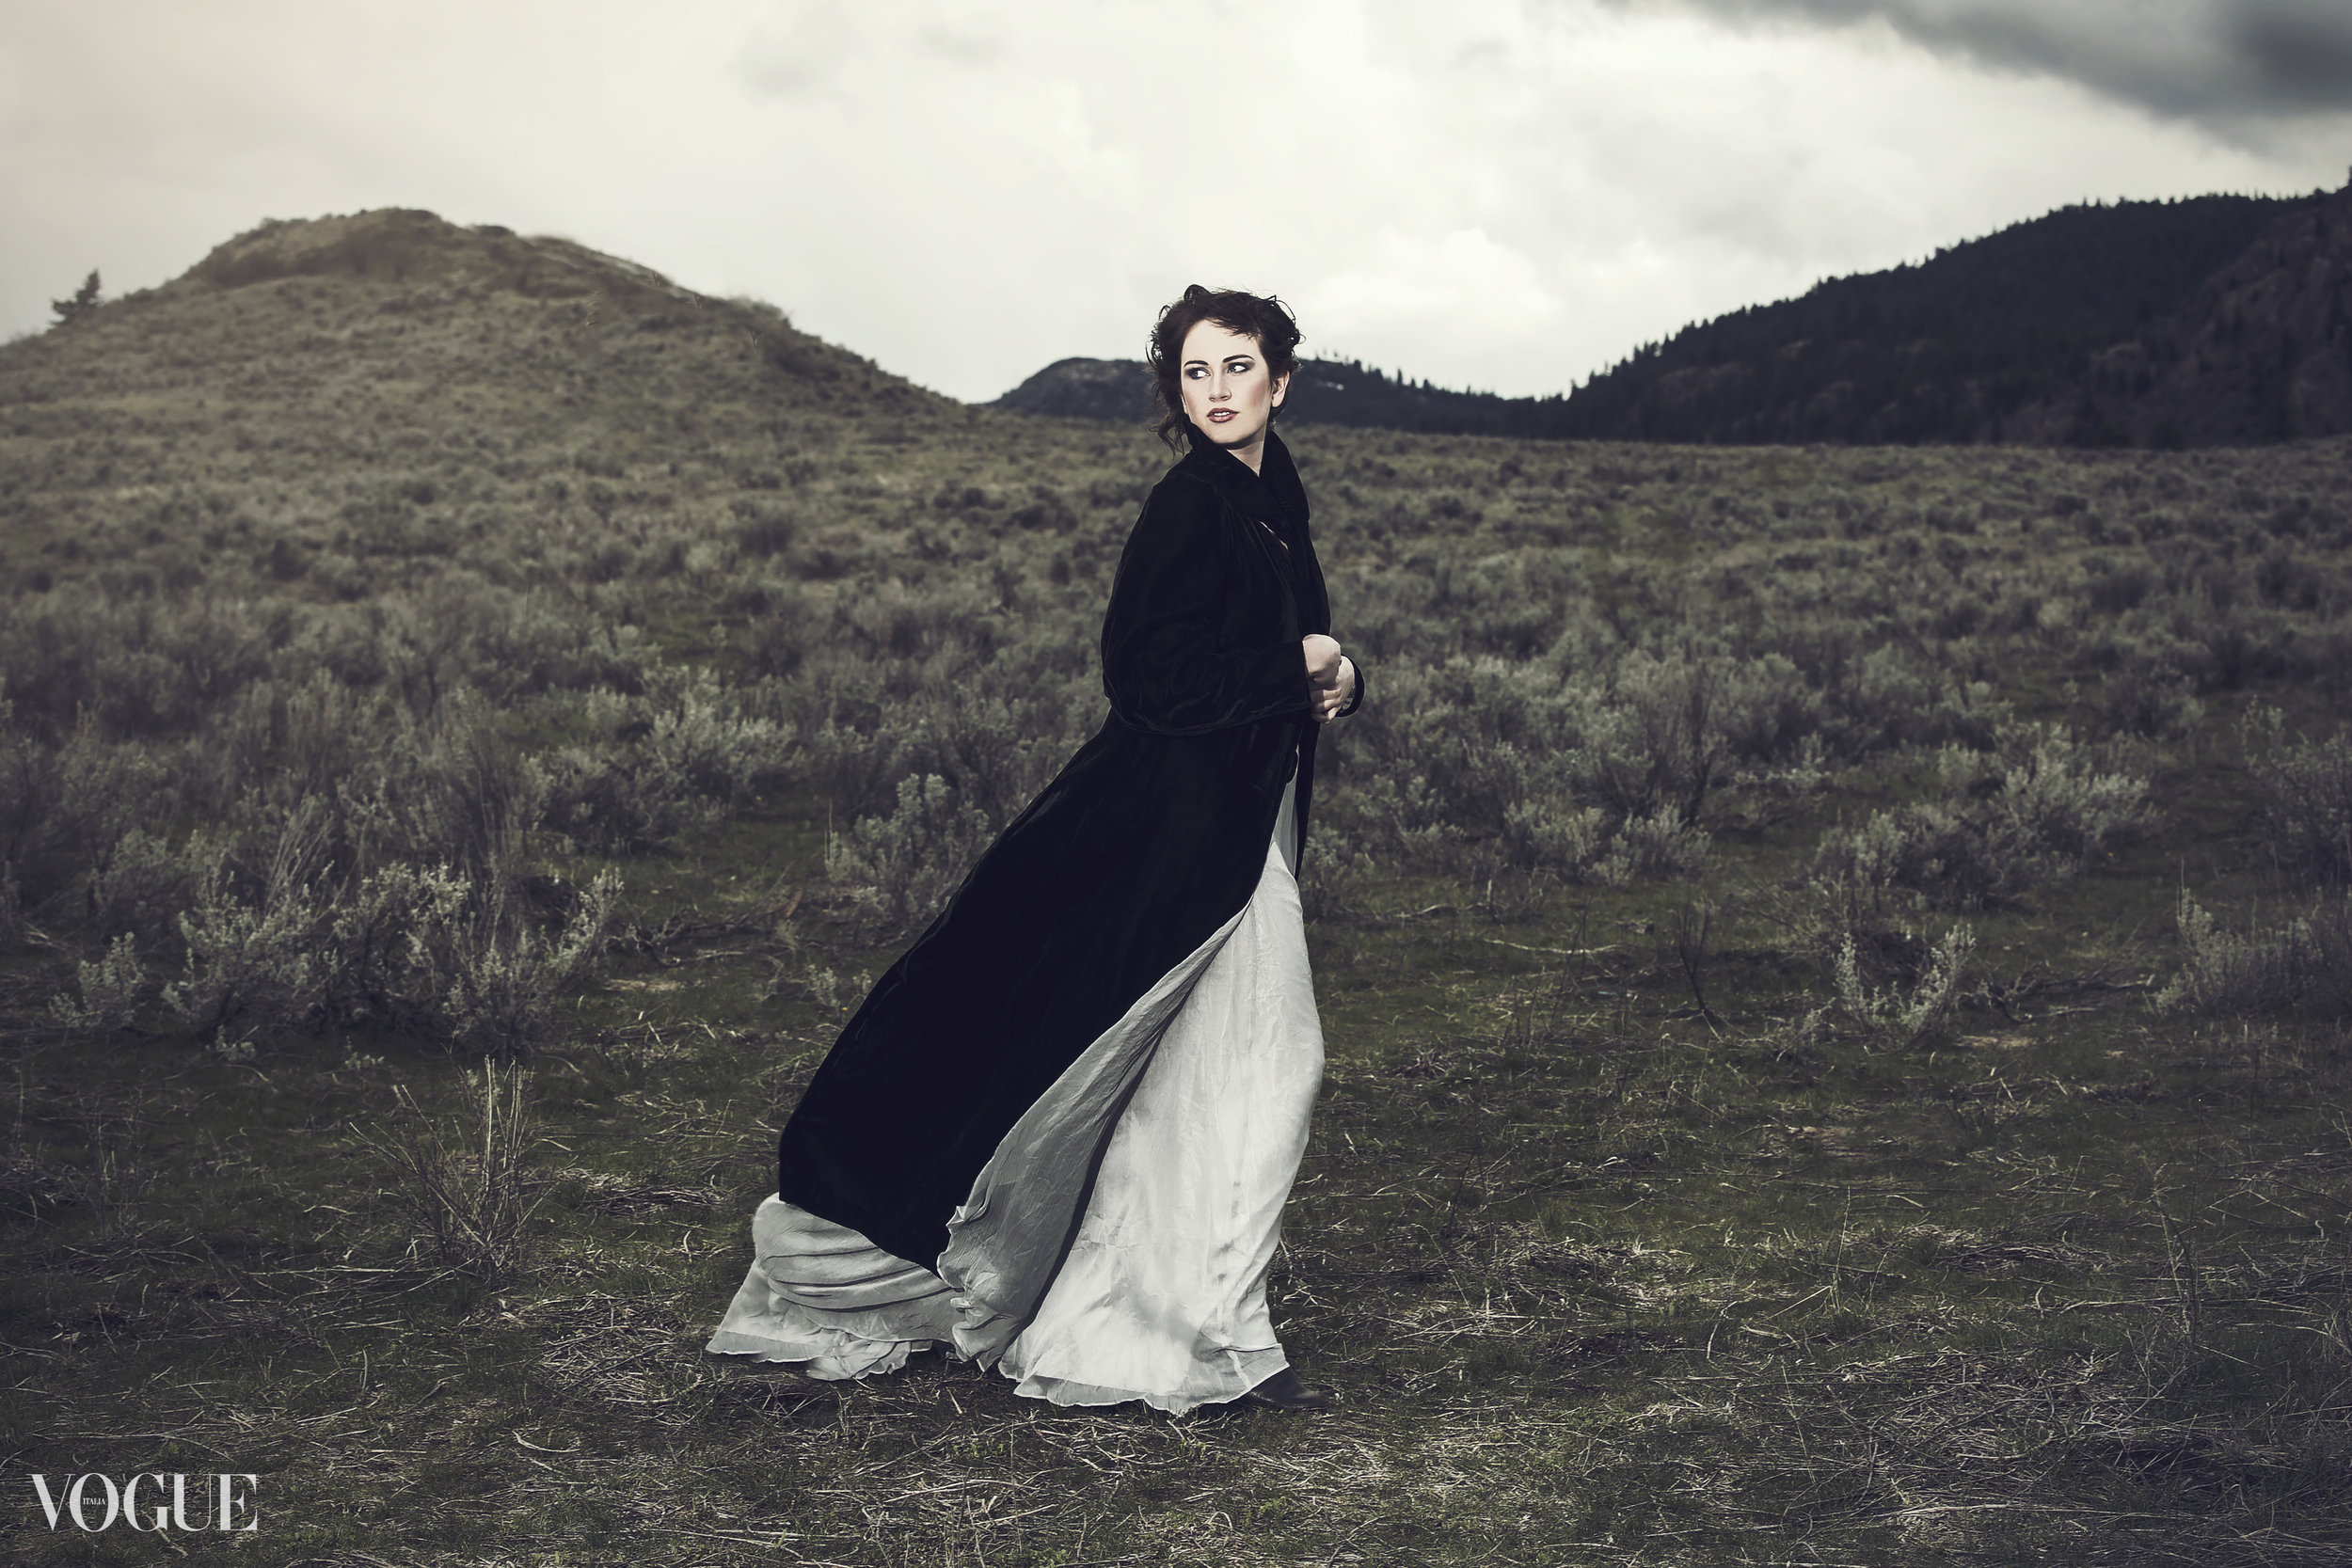 Wuthering Heights photoshoot near Okanagan Falls British Columbia